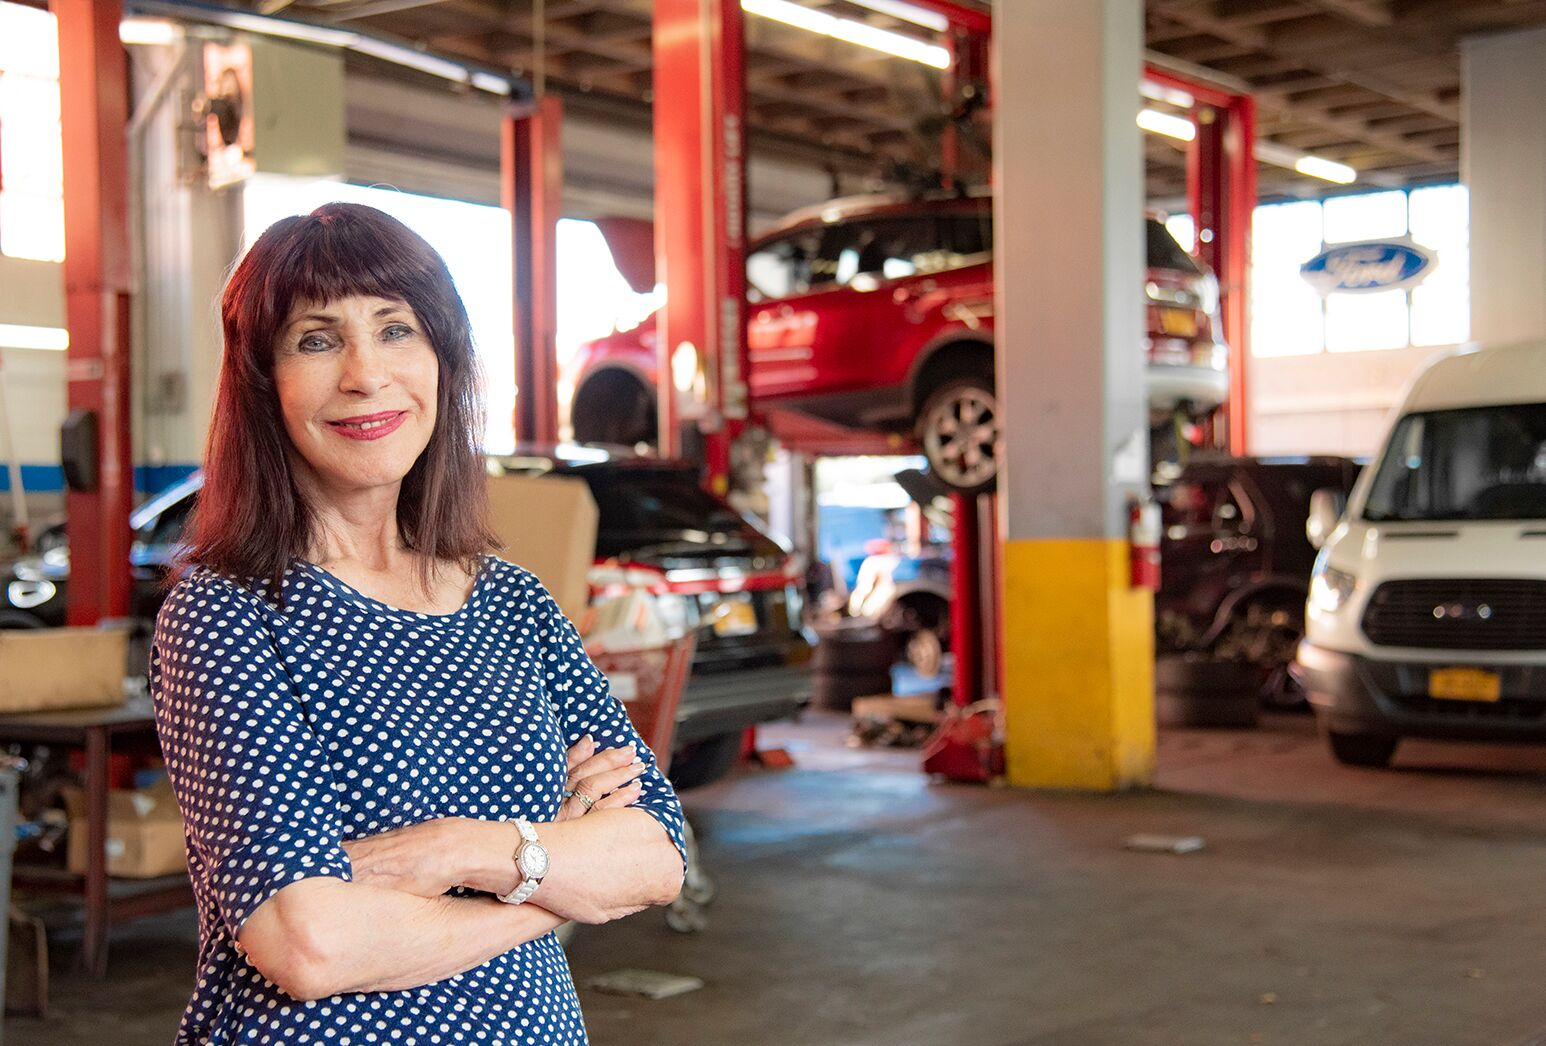 Woman with dark hair wearing a navy and white polka dot shirt in a car dealership.